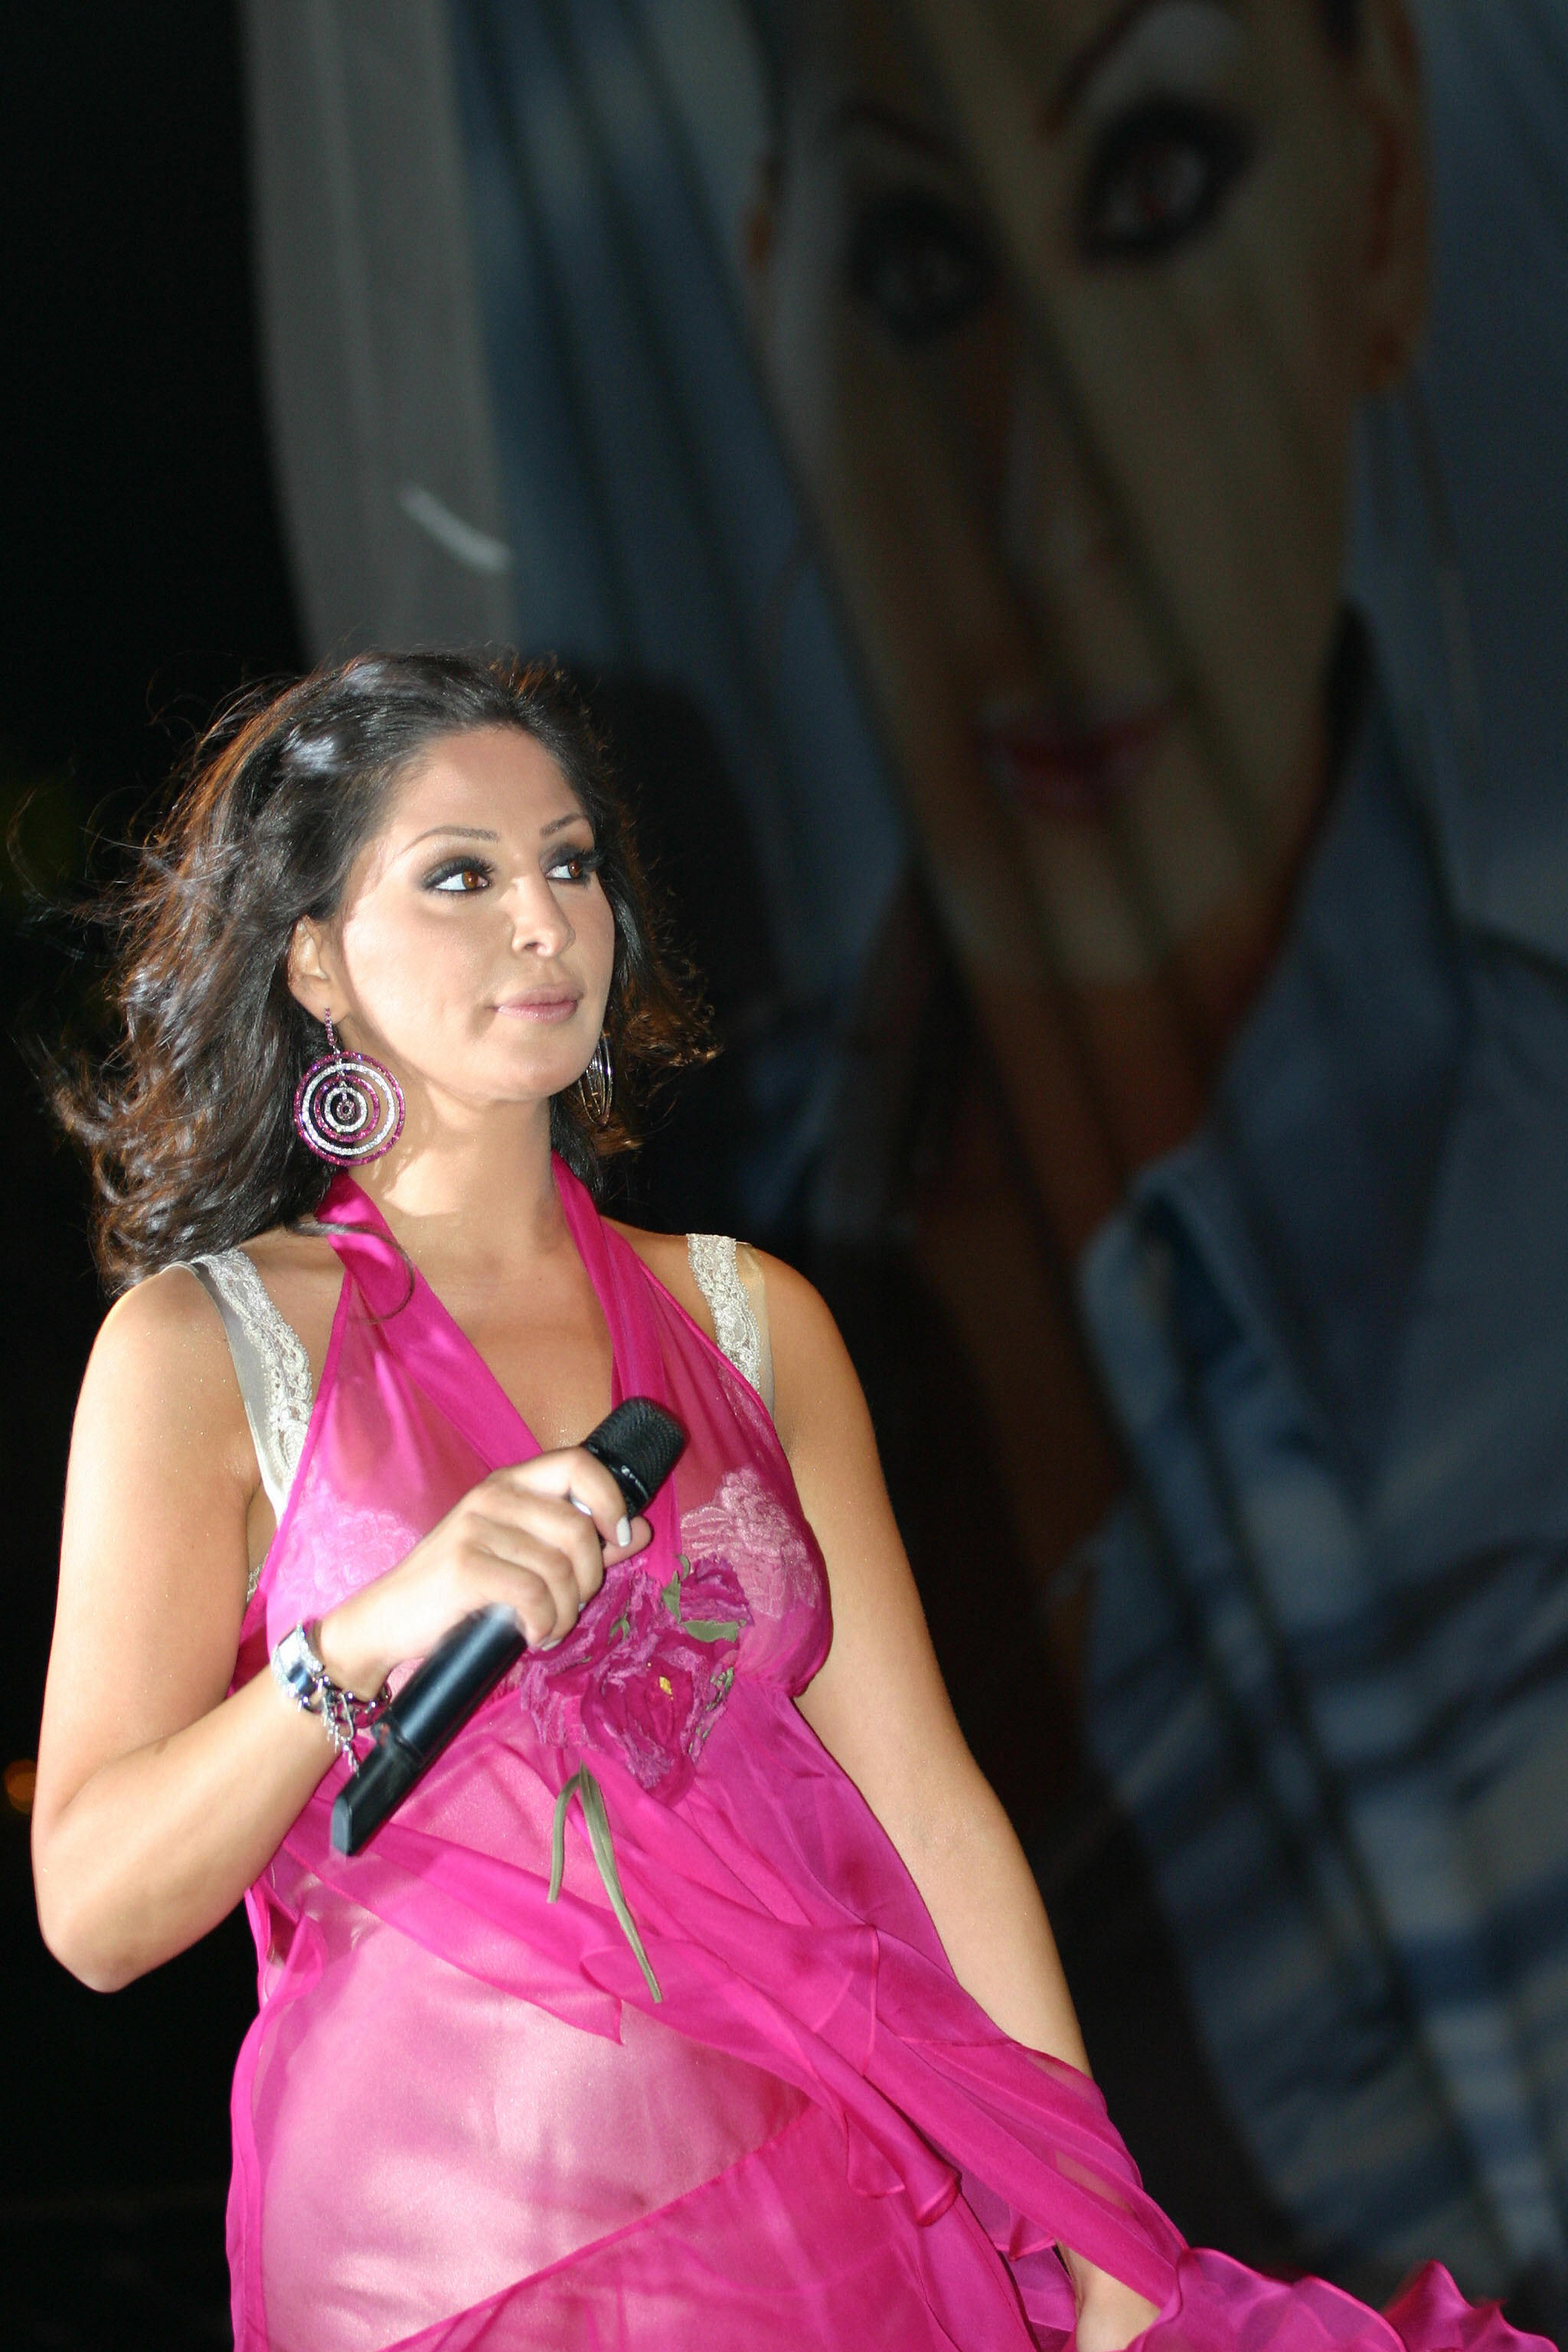 lebanese Pop star elissa